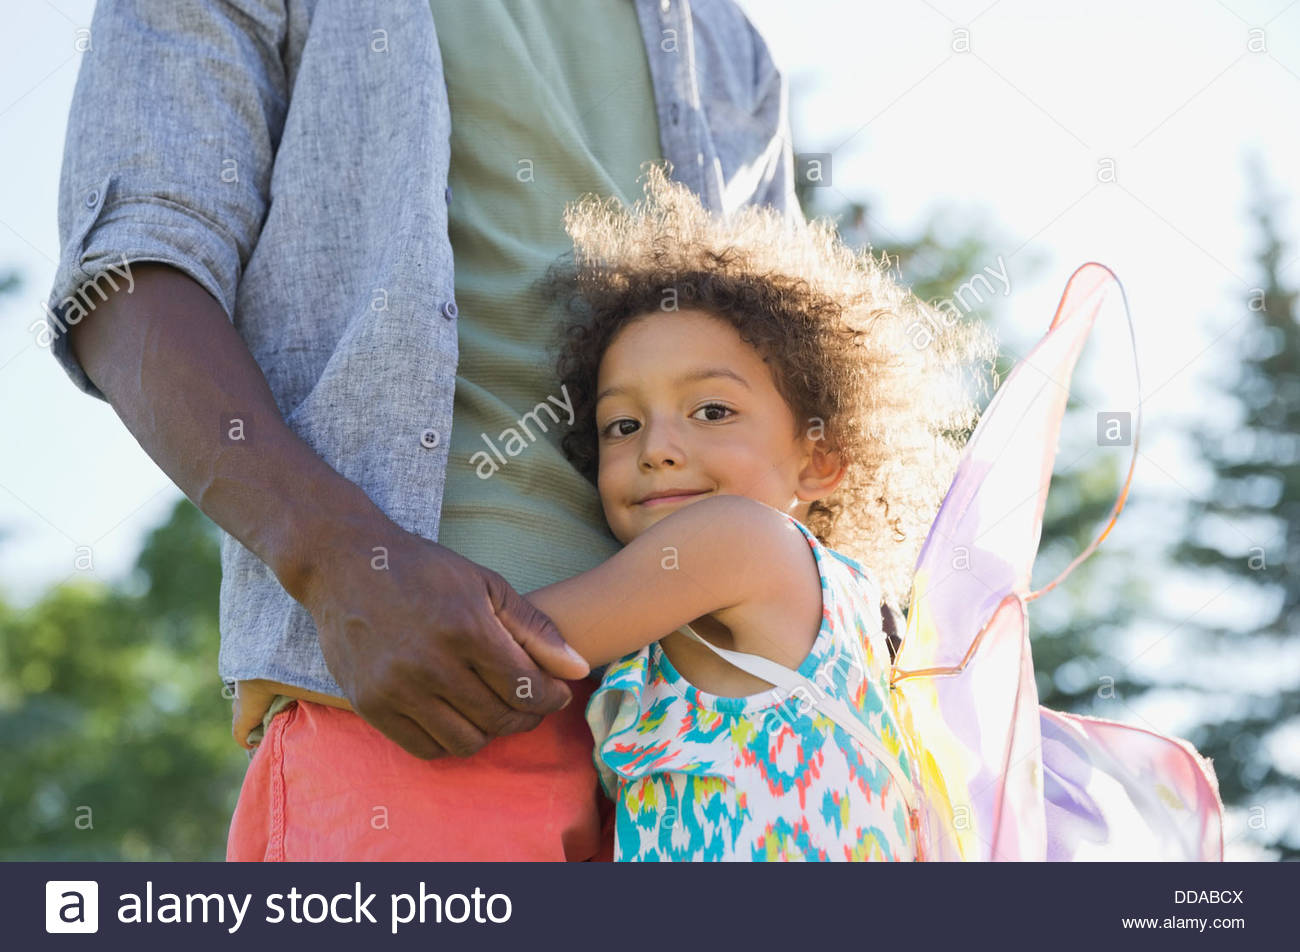 Portrait of cute girl embracing père at park Photo Stock